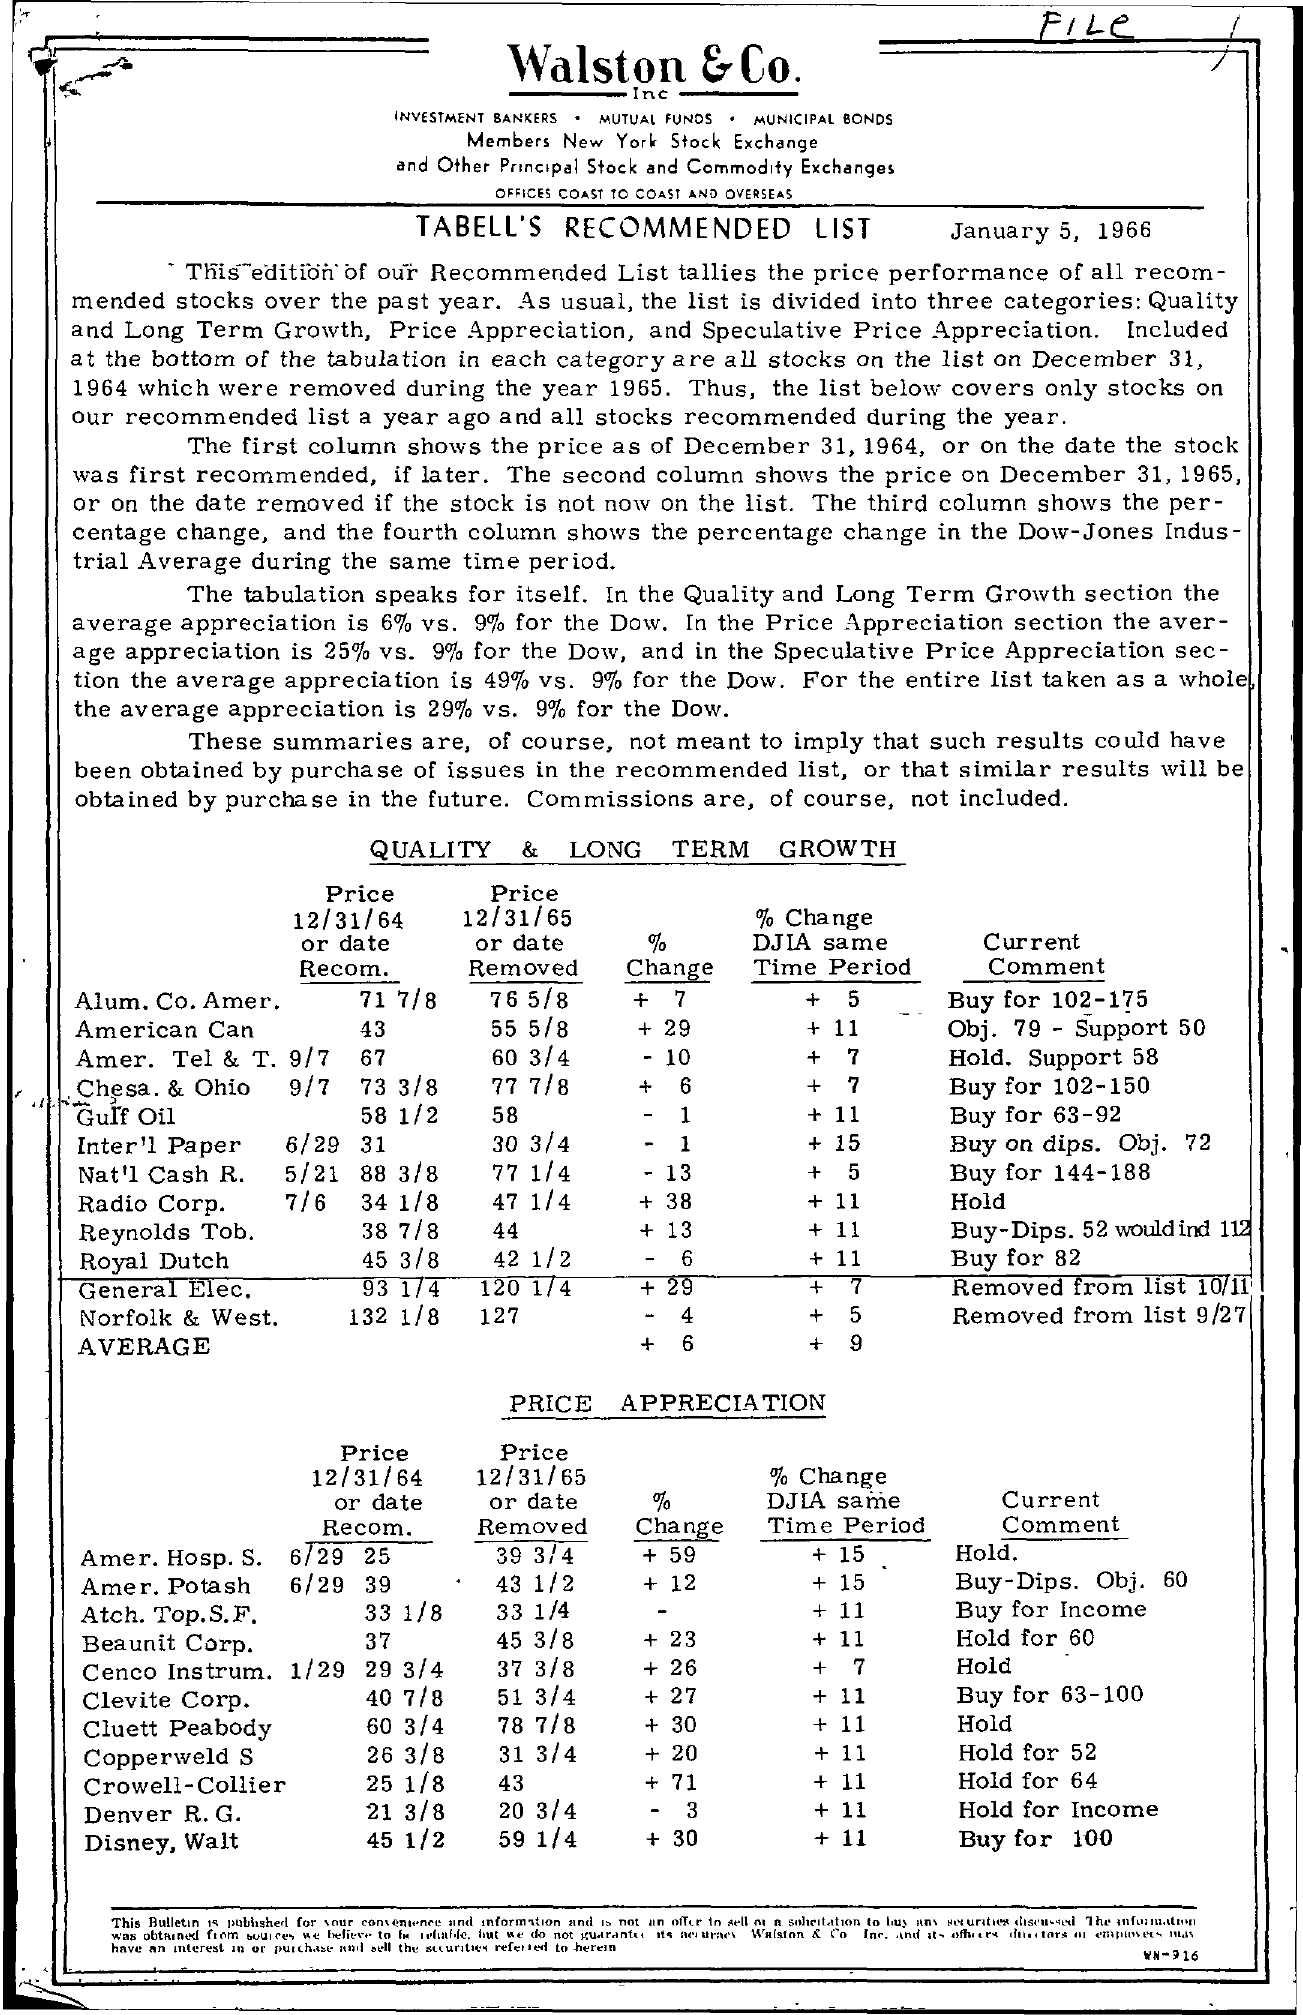 Tabell's Market Letter - January 05, 1966 page 1